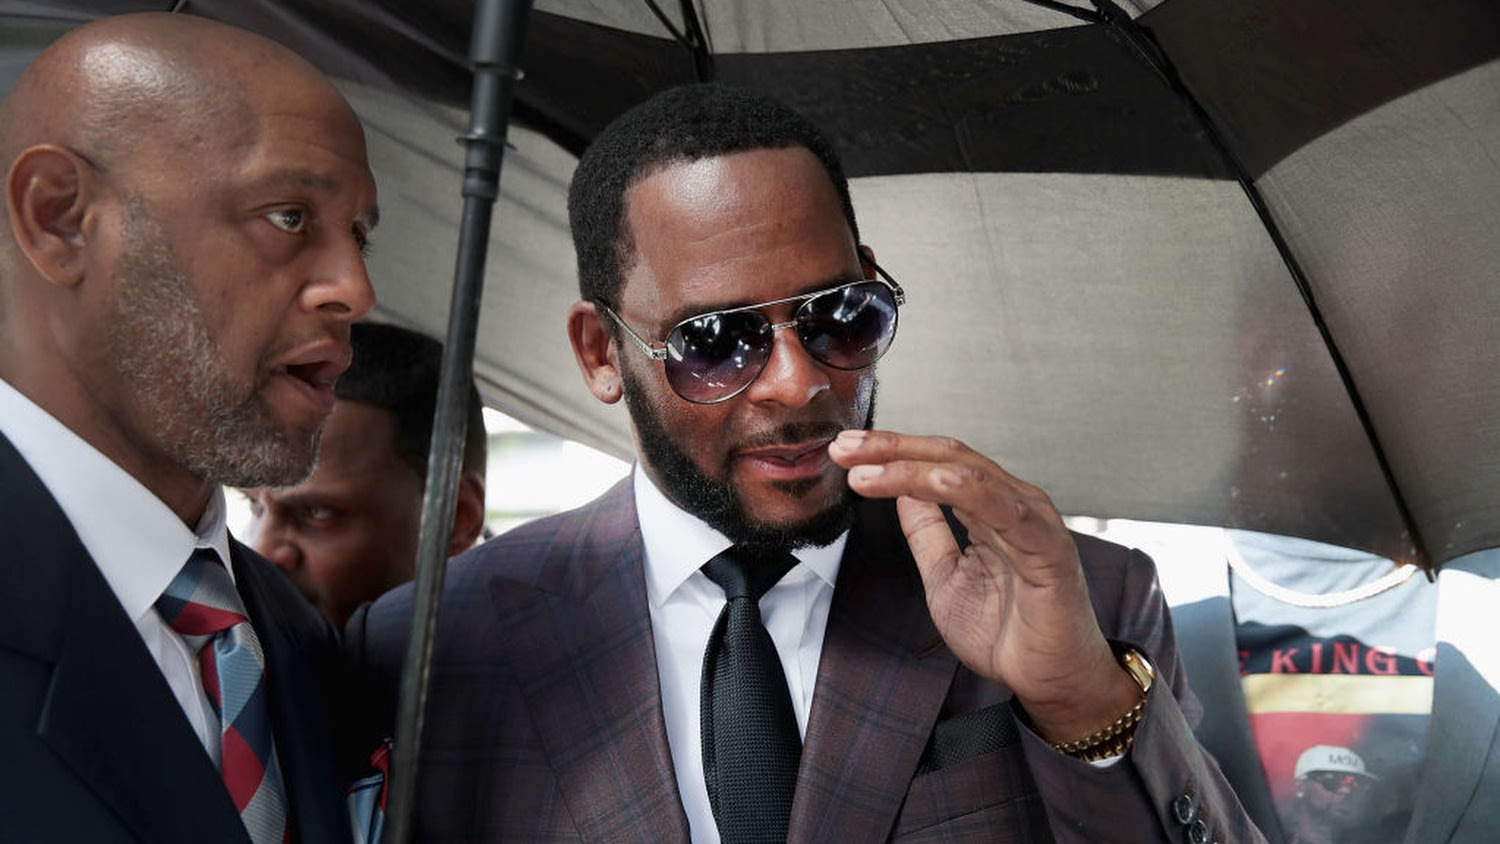 R. Kelly's Music Sales Skyrocketed After His Sex Trafficking Conviction